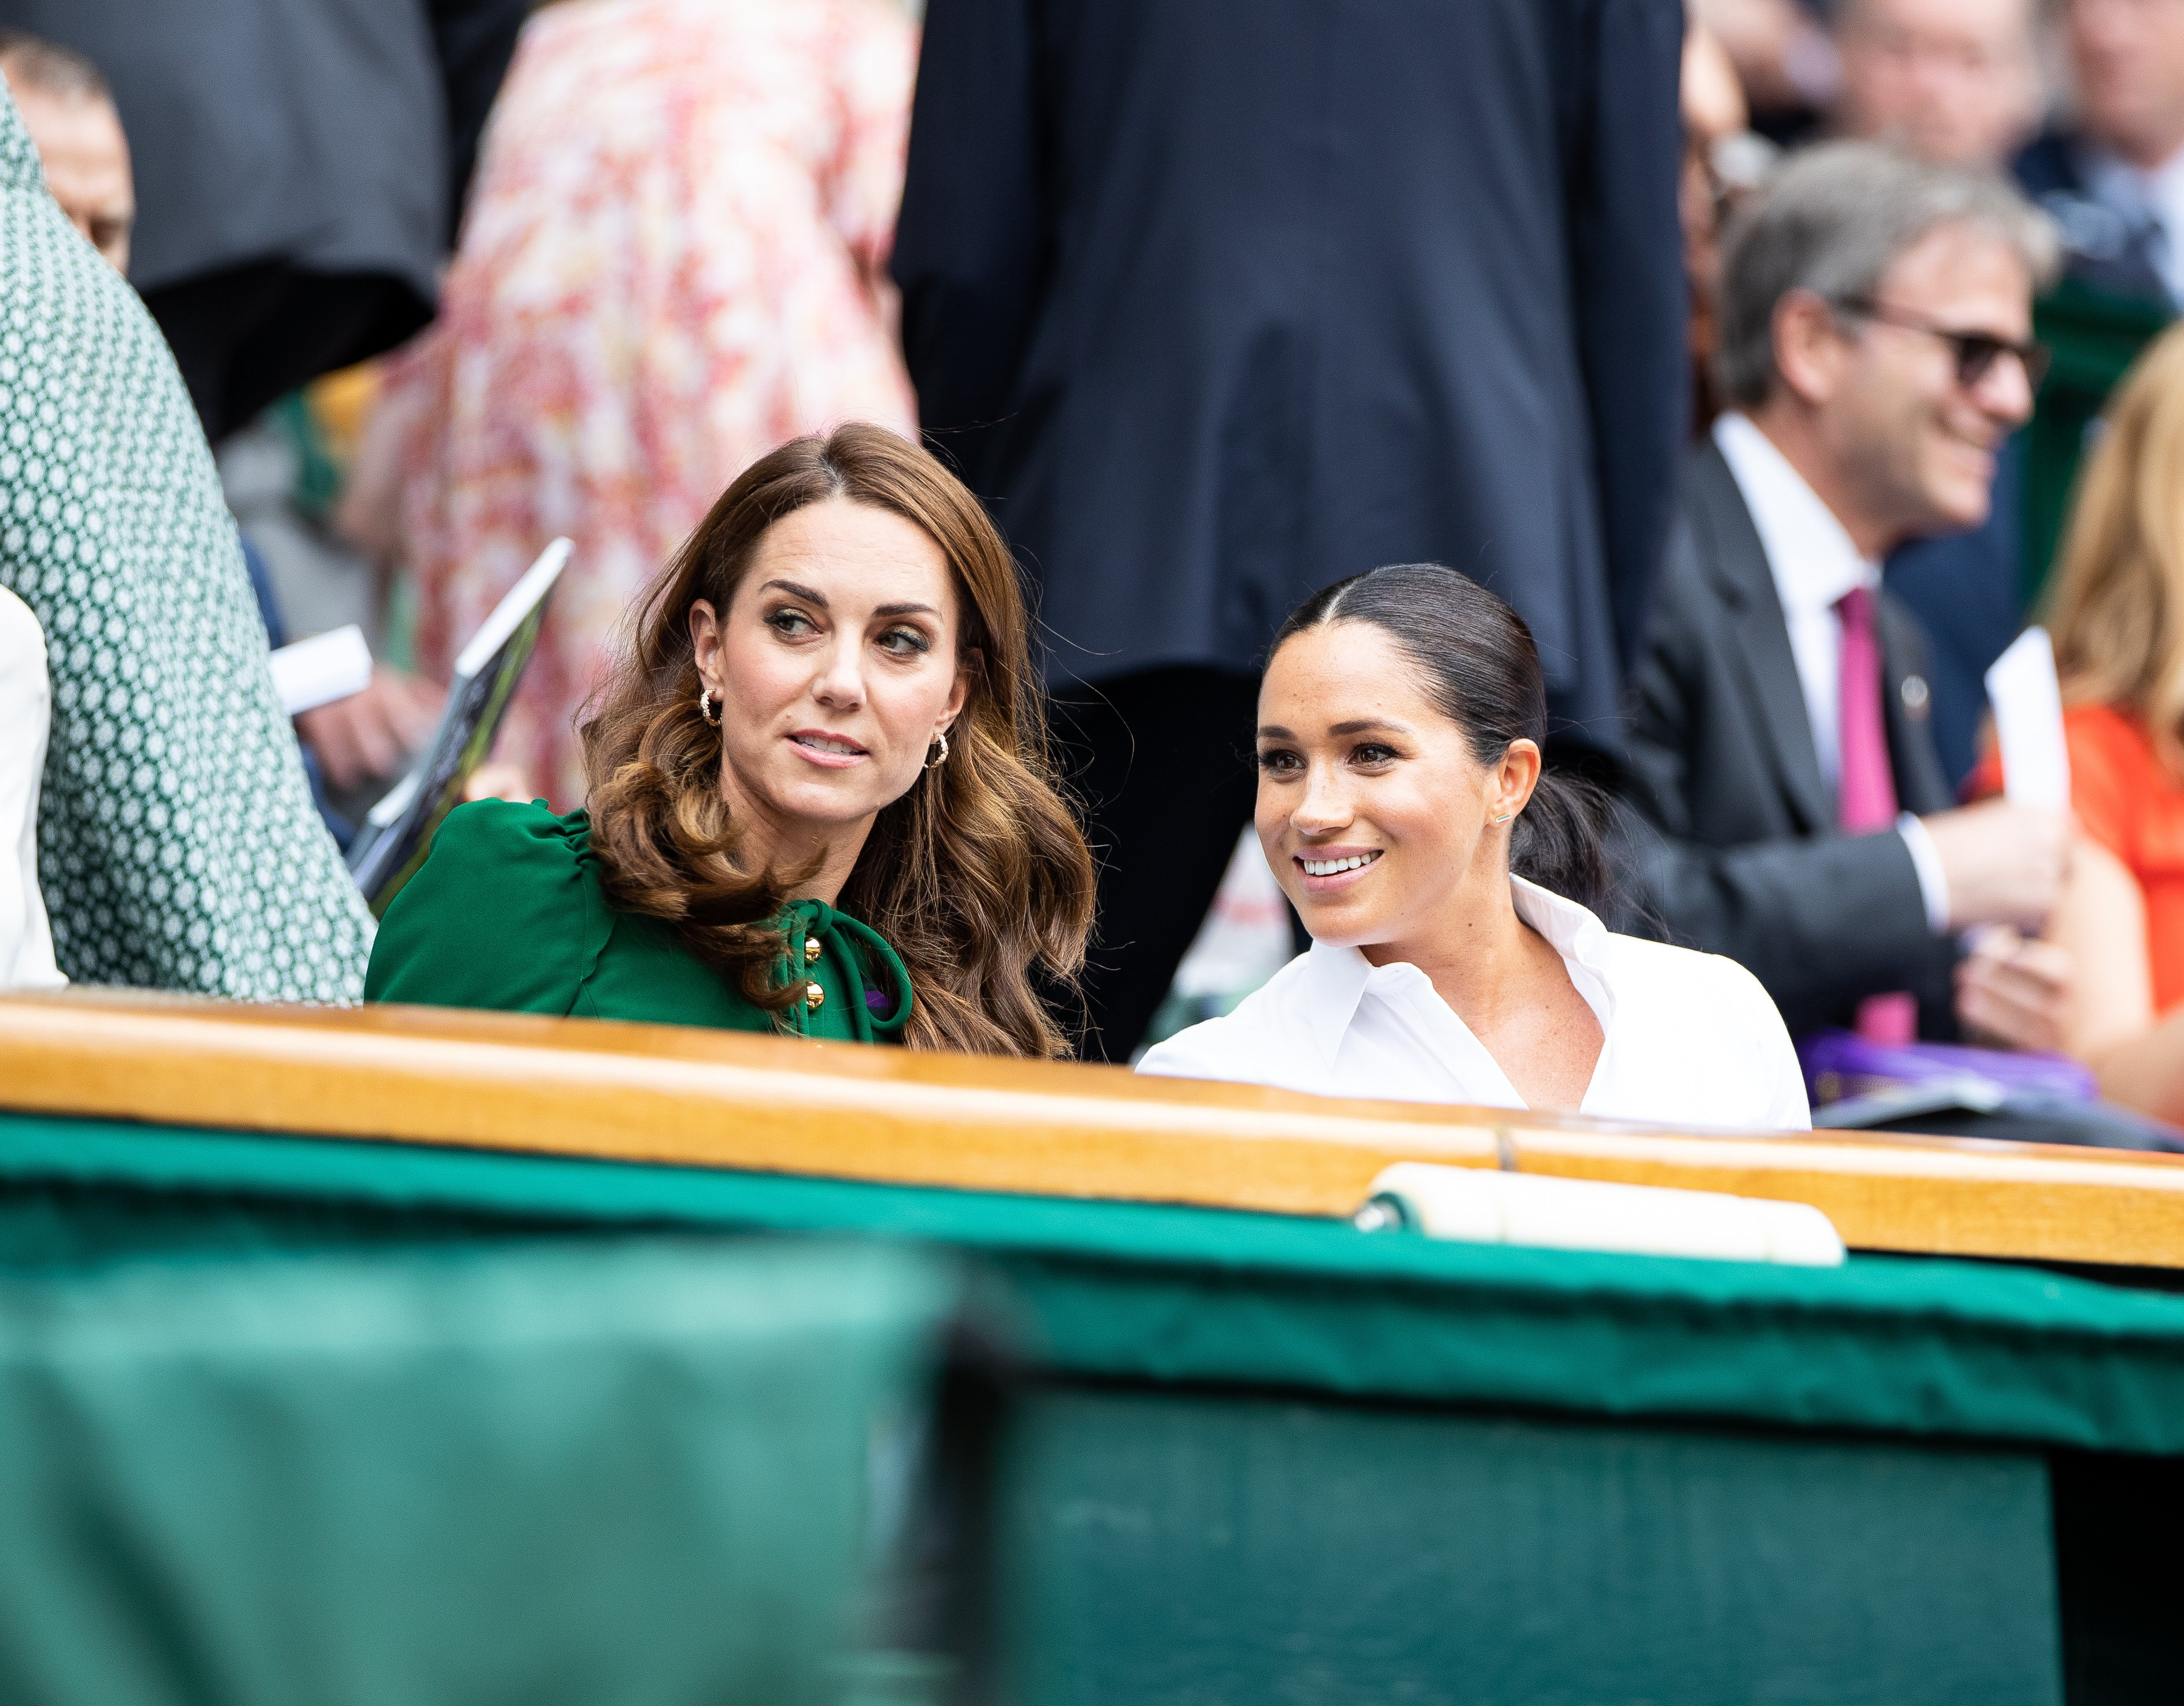 Kate Middleton, Duchess of Cambridge, talks with Meghan Markle, Duchess of Sussex in the royal box before the start of the Women's Singles Final at The Wimbledon Lawn Tennis Championship at the All England Lawn and Tennis Club at Wimbledon on July 13, 2019 in London, England | Photo: Getty Images